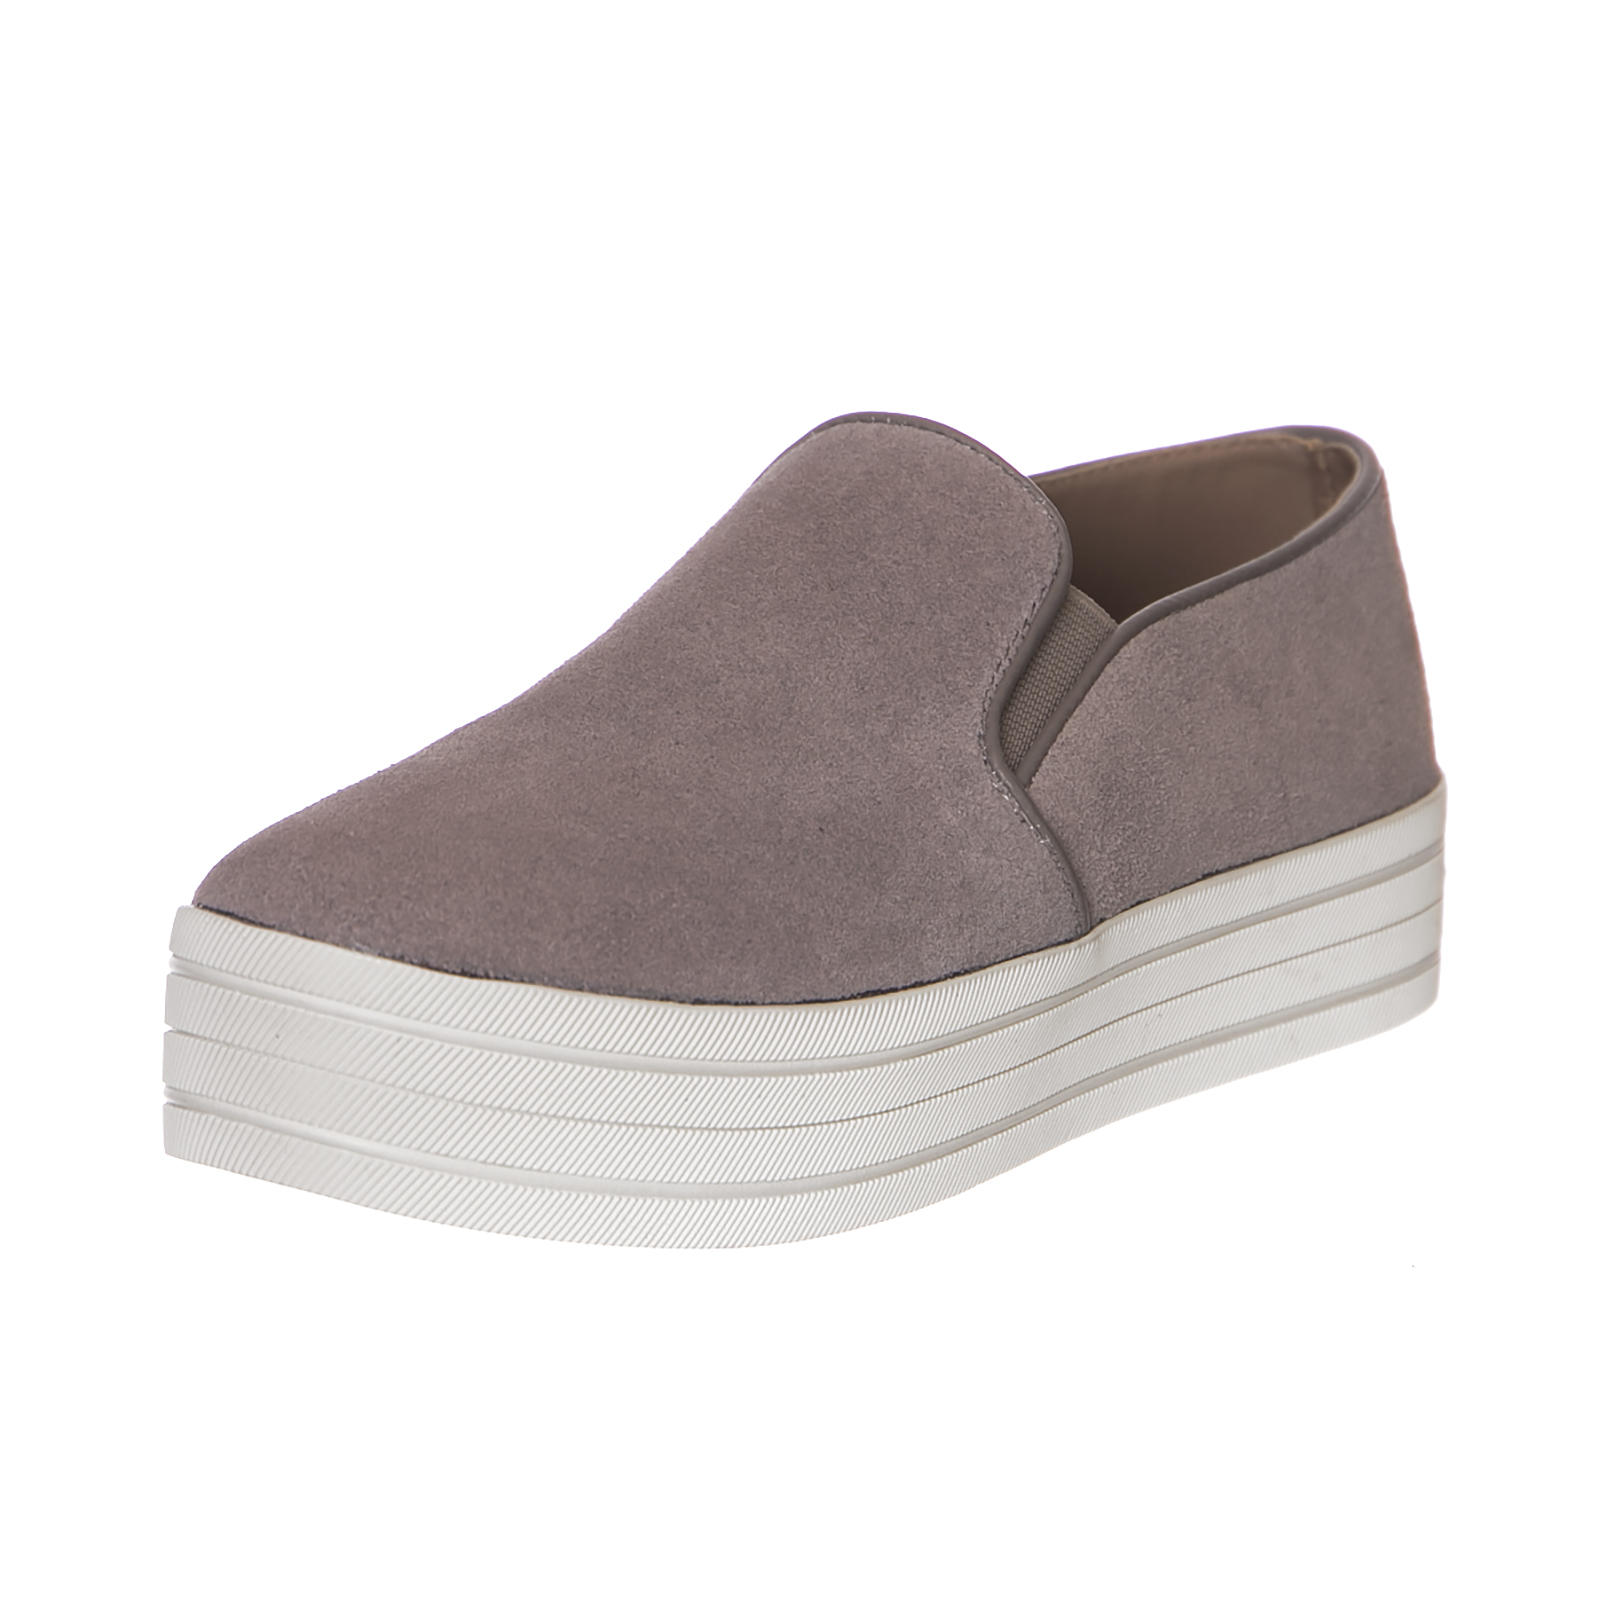 Steve Madden Sneakers Buhba Taupe Suede Marrone